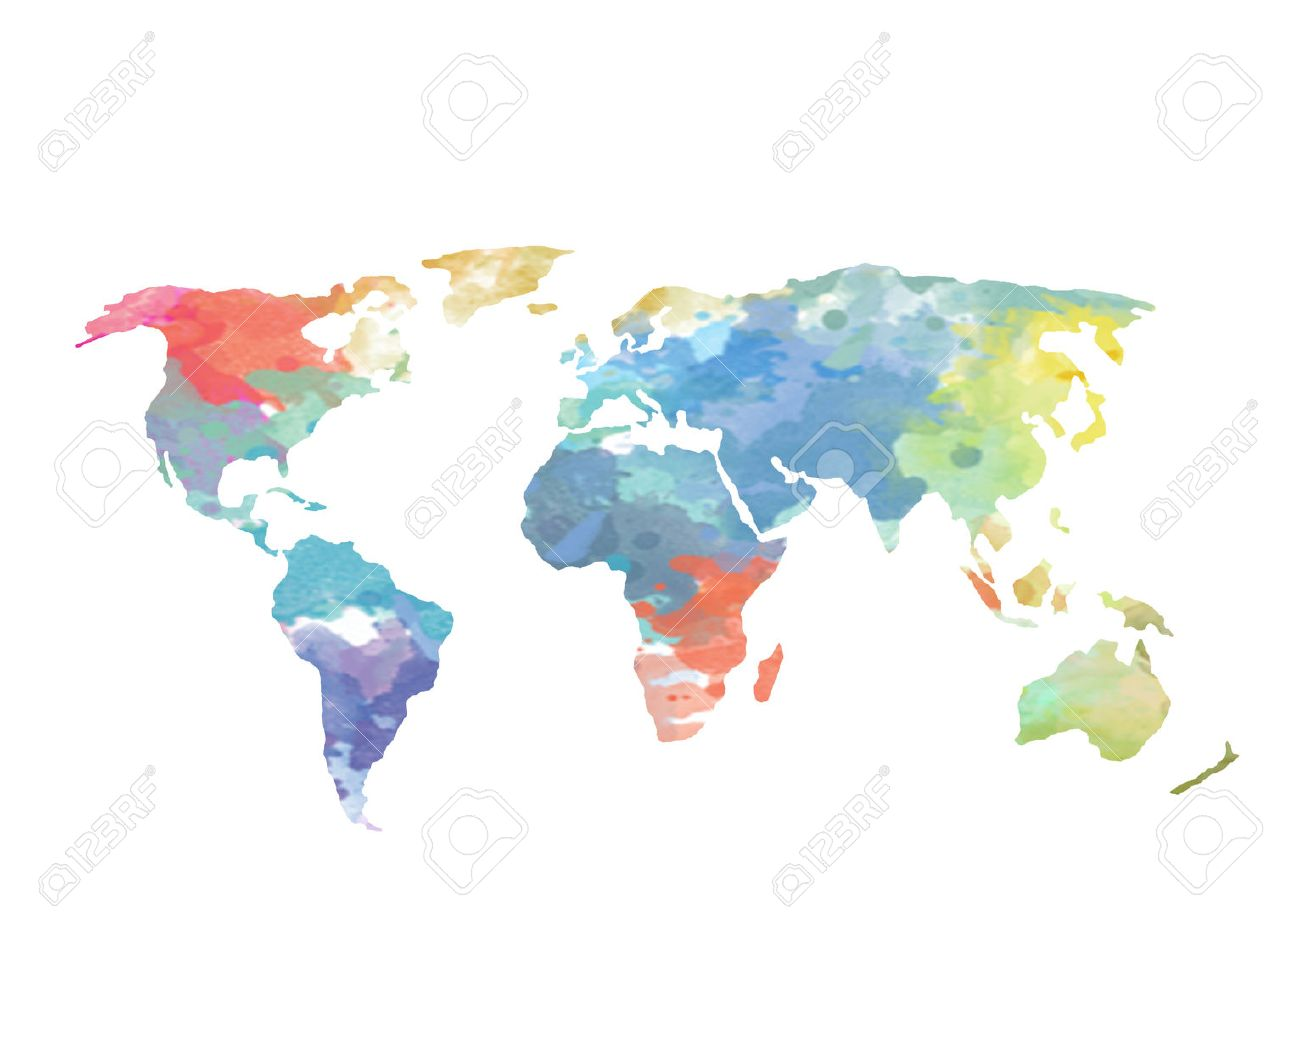 Watercolor world map poster continents ocean stock photo picture watercolor world map poster continents ocean stock photo 31406583 gumiabroncs Images